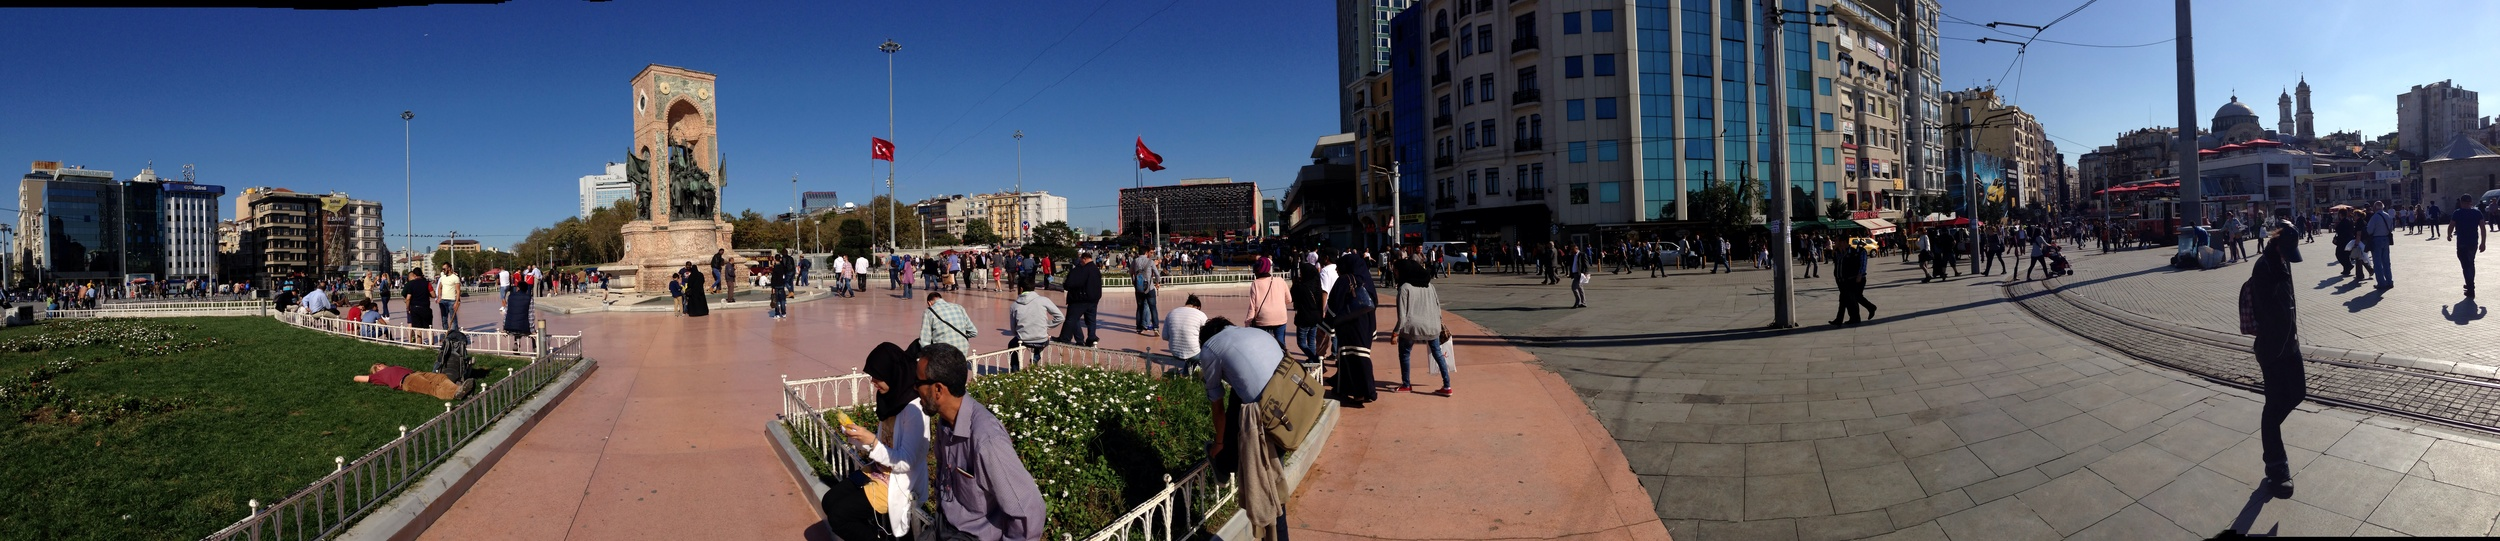 Taksim Square; which is actually round with not one but 2 huge Turkish flags flying.